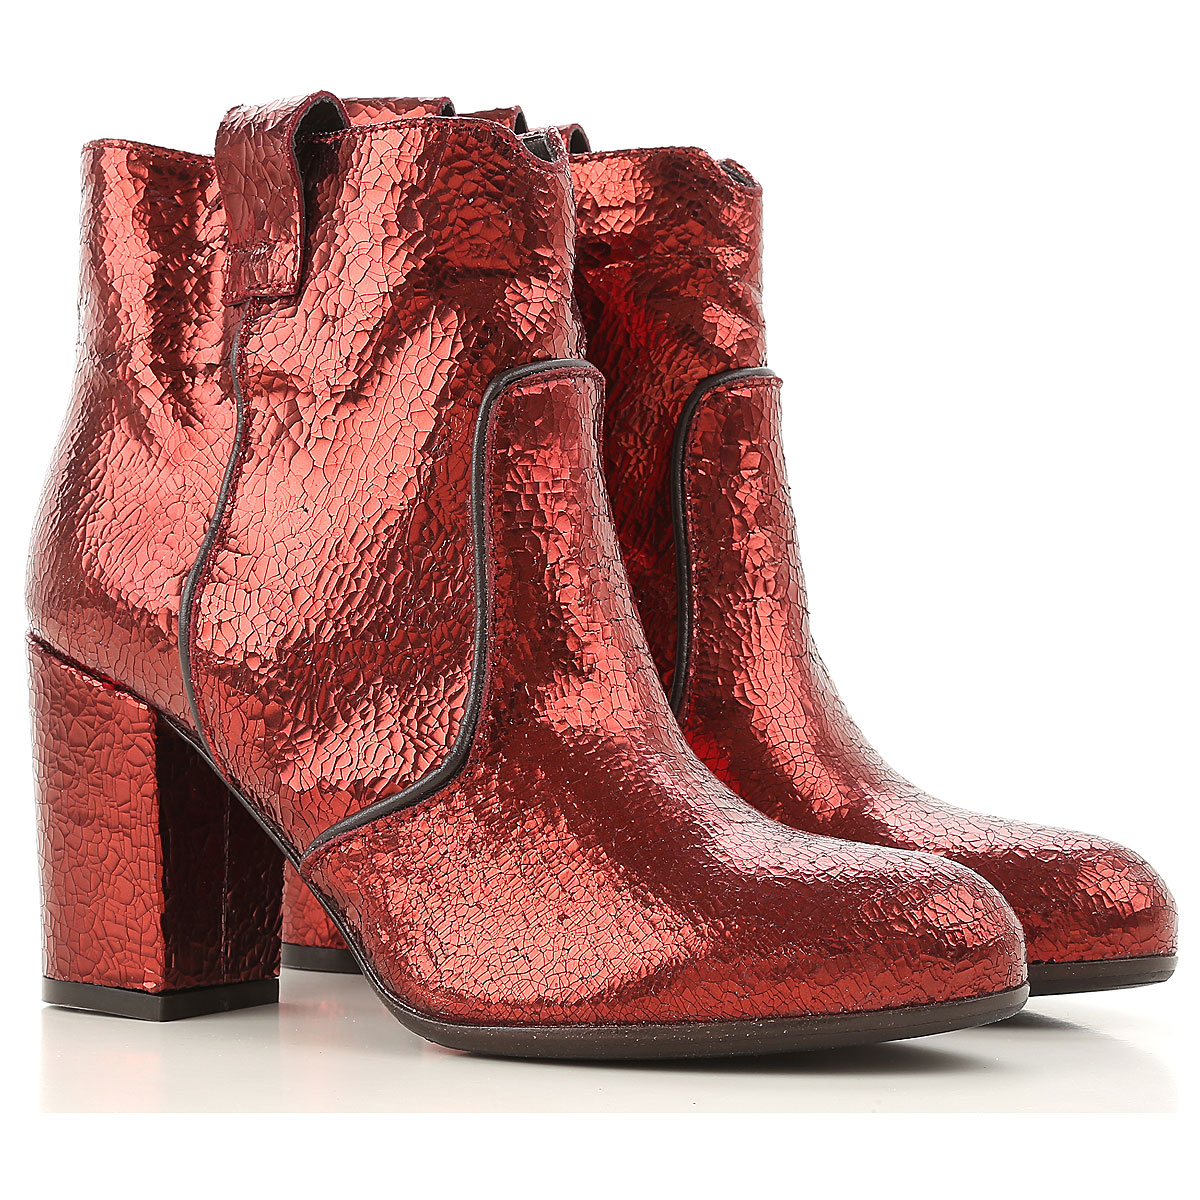 Image of Paris Texas Boots for Women, Booties On Sale in Outlet, Rust, lame, 2017, 5.5 6 6.5 9